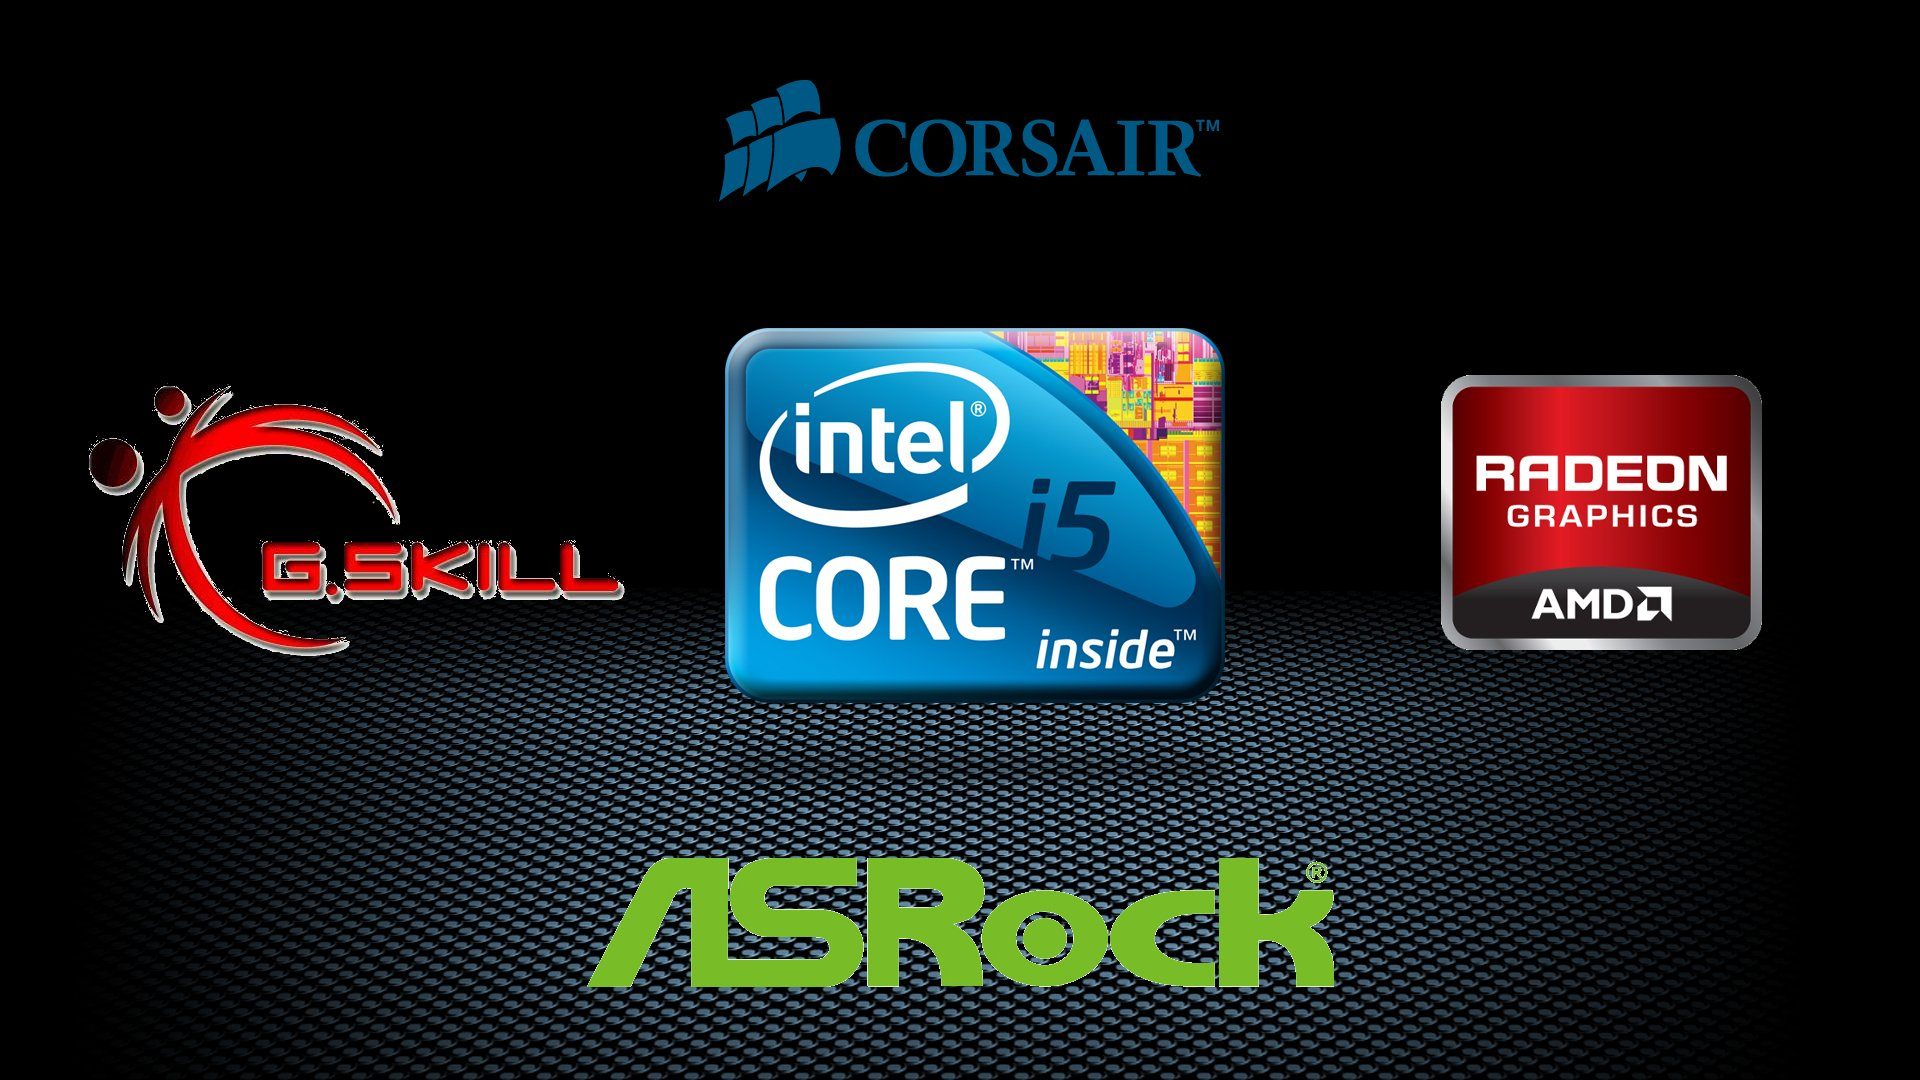 Asrock Gaming Motherboard Computer Videogame Game 1 Wallpaper 19x1080 Wallpaperup